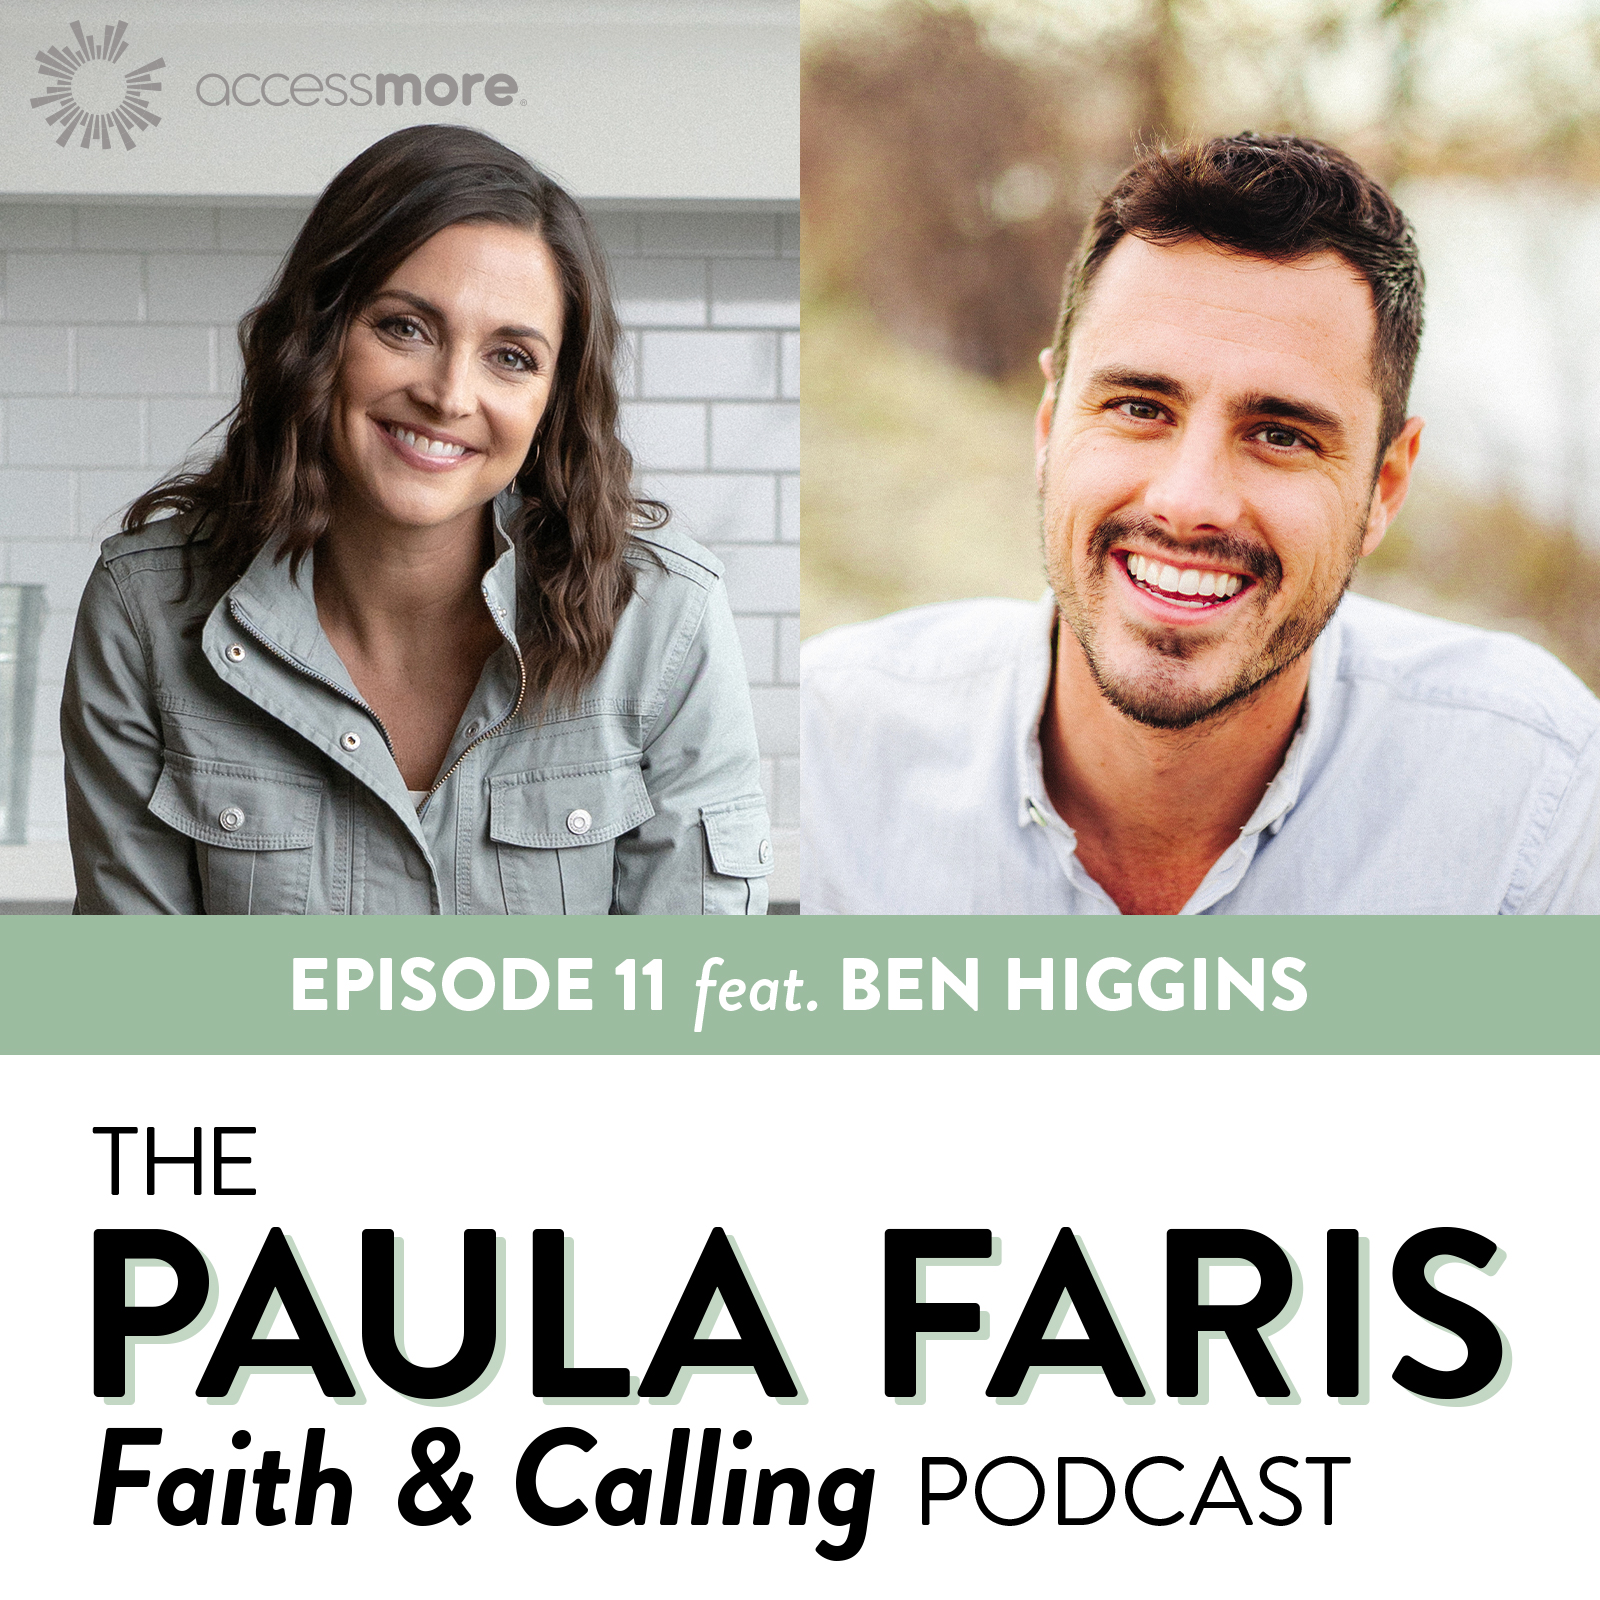 Ep 11 - Ben Higgins: Bachelor talks Addiction, Loneliness, and Isolation